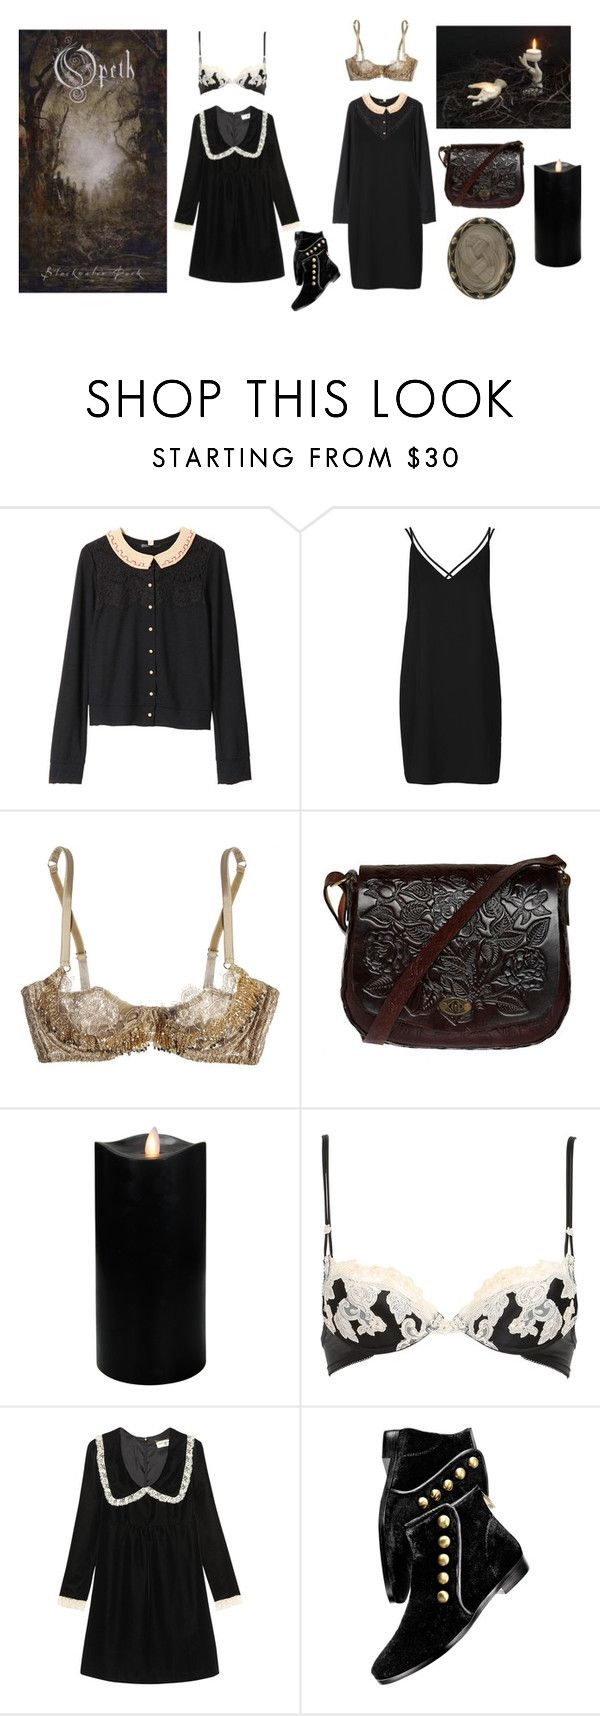 """""""Opeth, """"Blackwater park"""""""" by sulphor ❤ liked on Polyvore featuring Mihoko Saito, Topshop, Agent Provocateur, Zara Home, Boston Warehouse, La Perla, Yves Saint Laurent and House of Harlow 1960"""